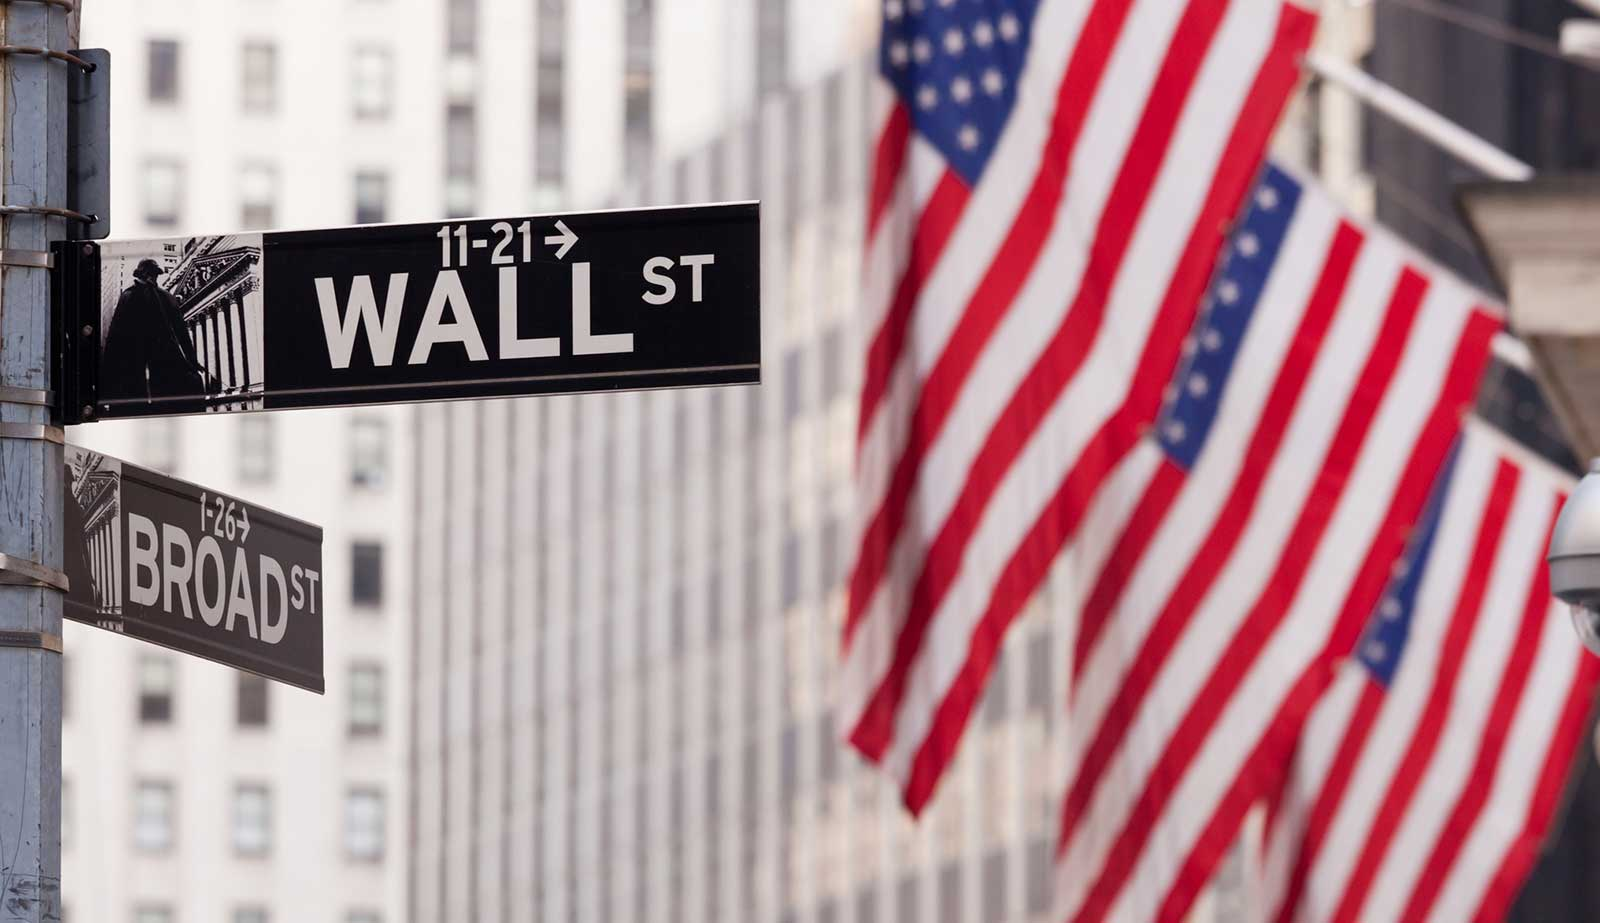 Wall St and american flags